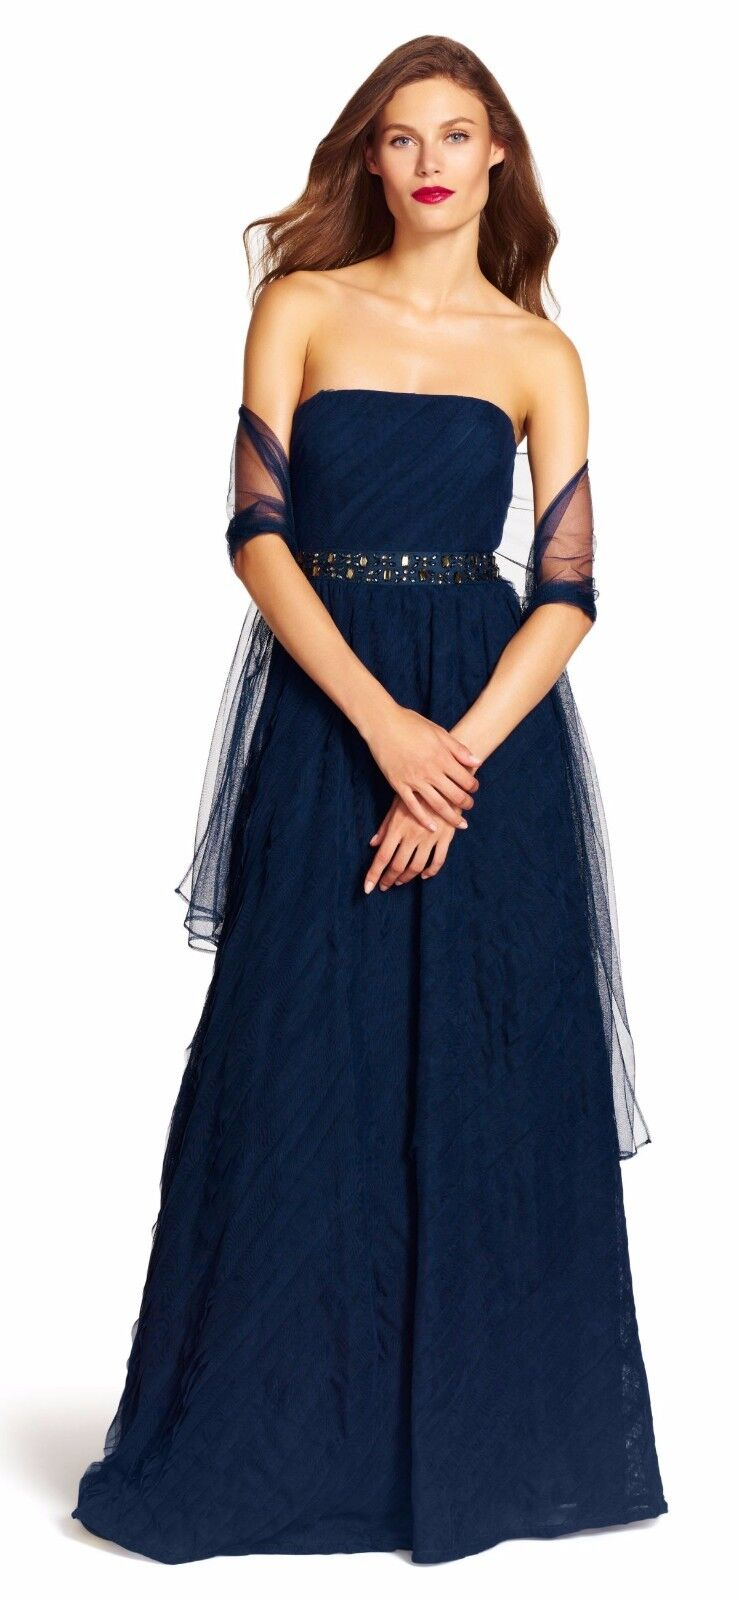 Adrianna Pepell Deep bluee Strapless Layered Tulle Ball Gown 12